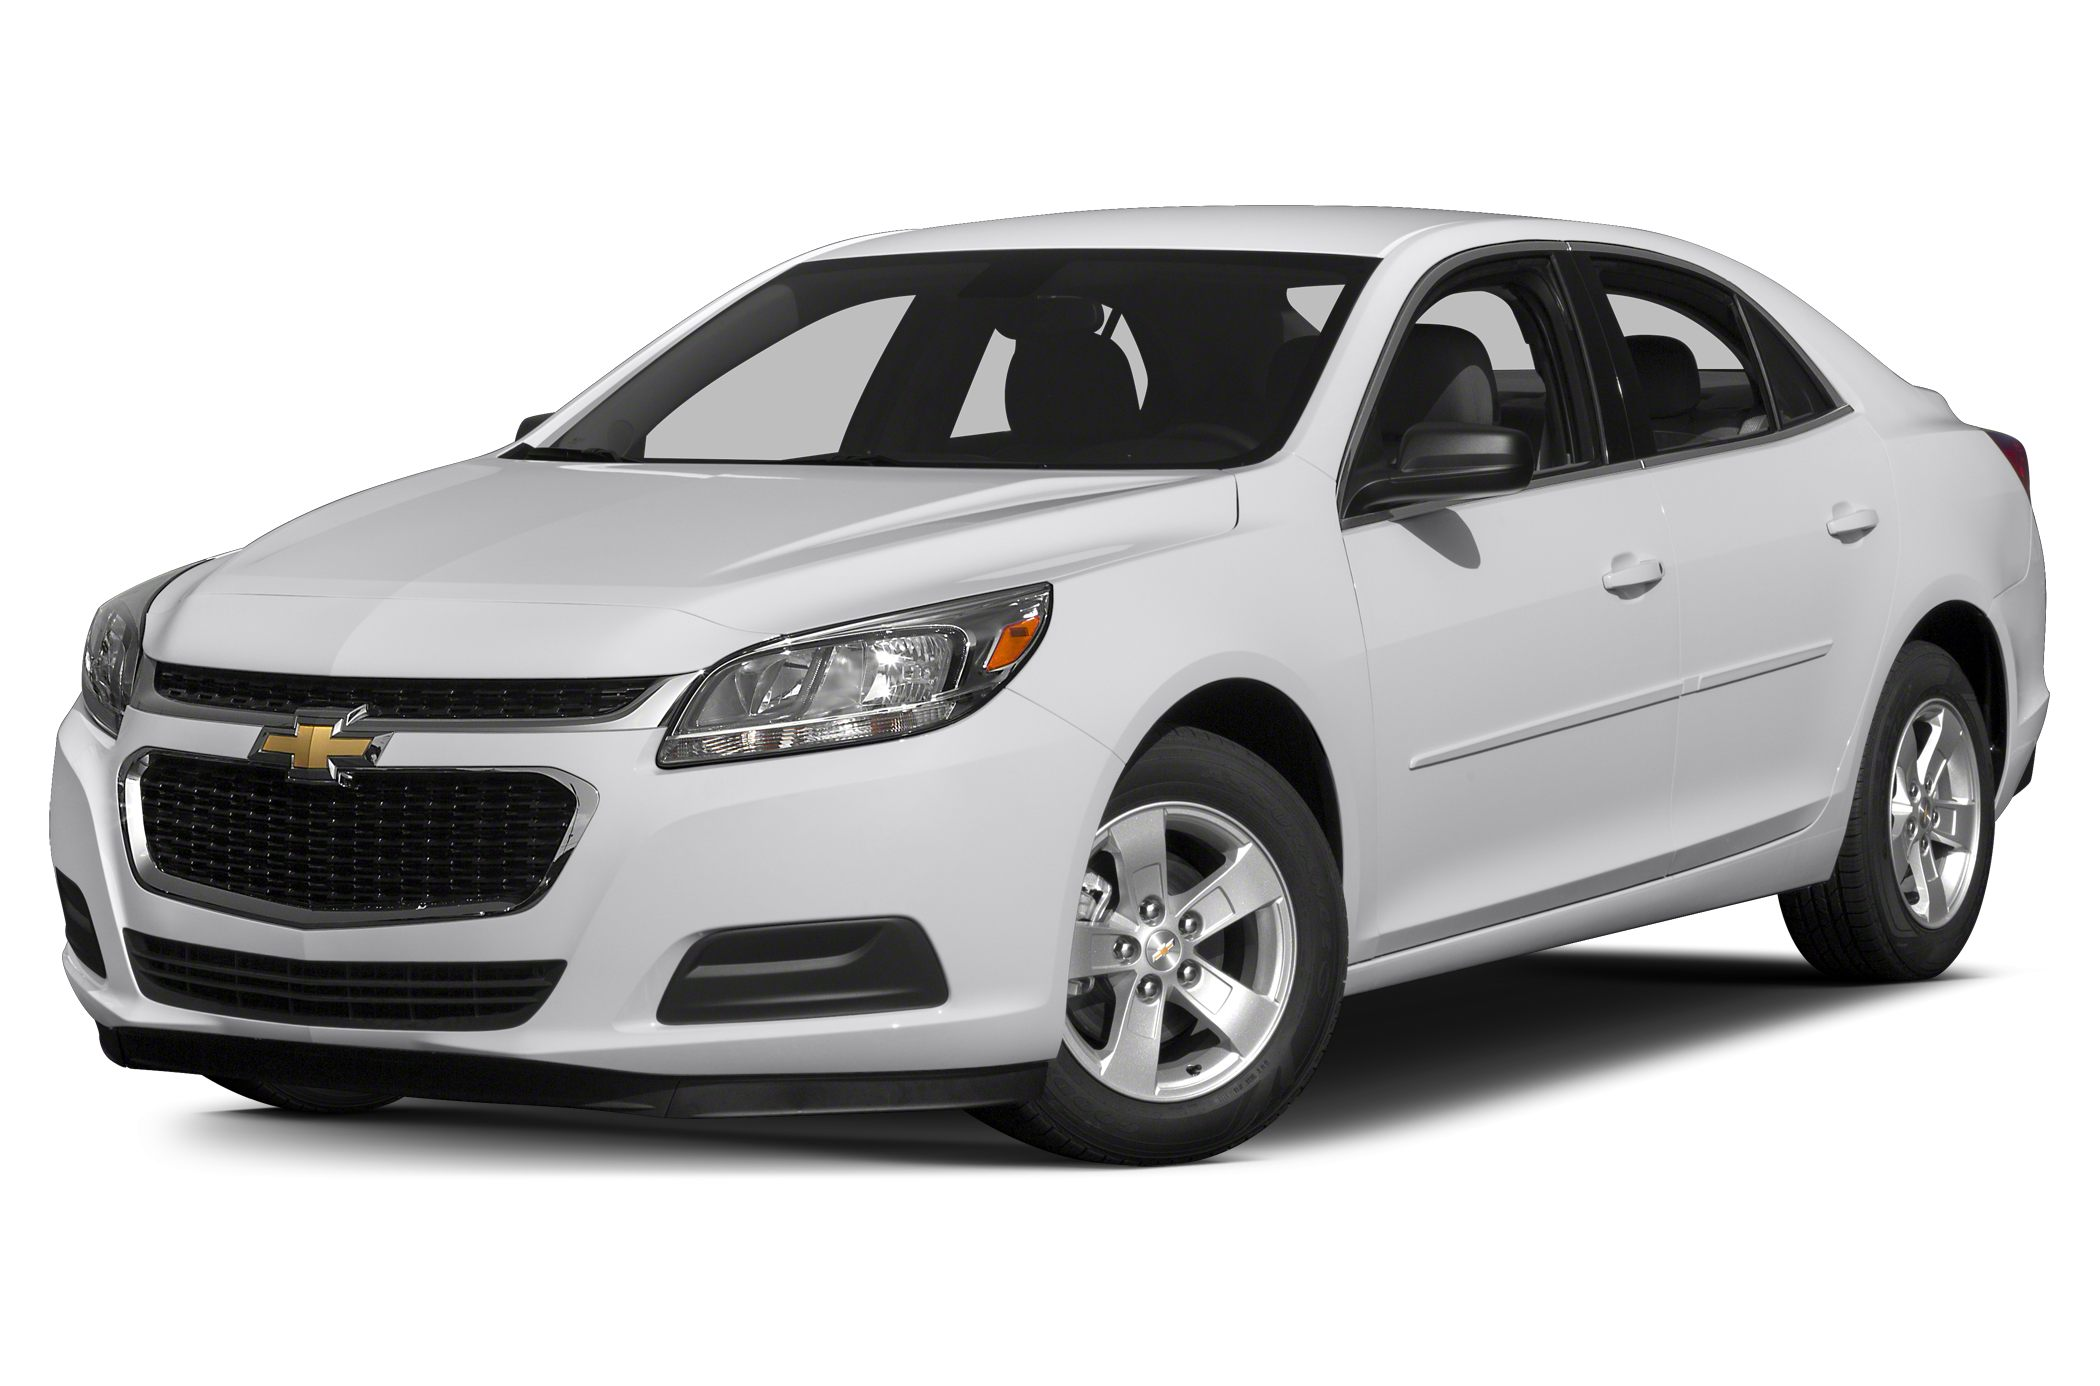 2015 Chevrolet Malibu LS Sedan for sale in Key West for $23,565 with 0 miles.